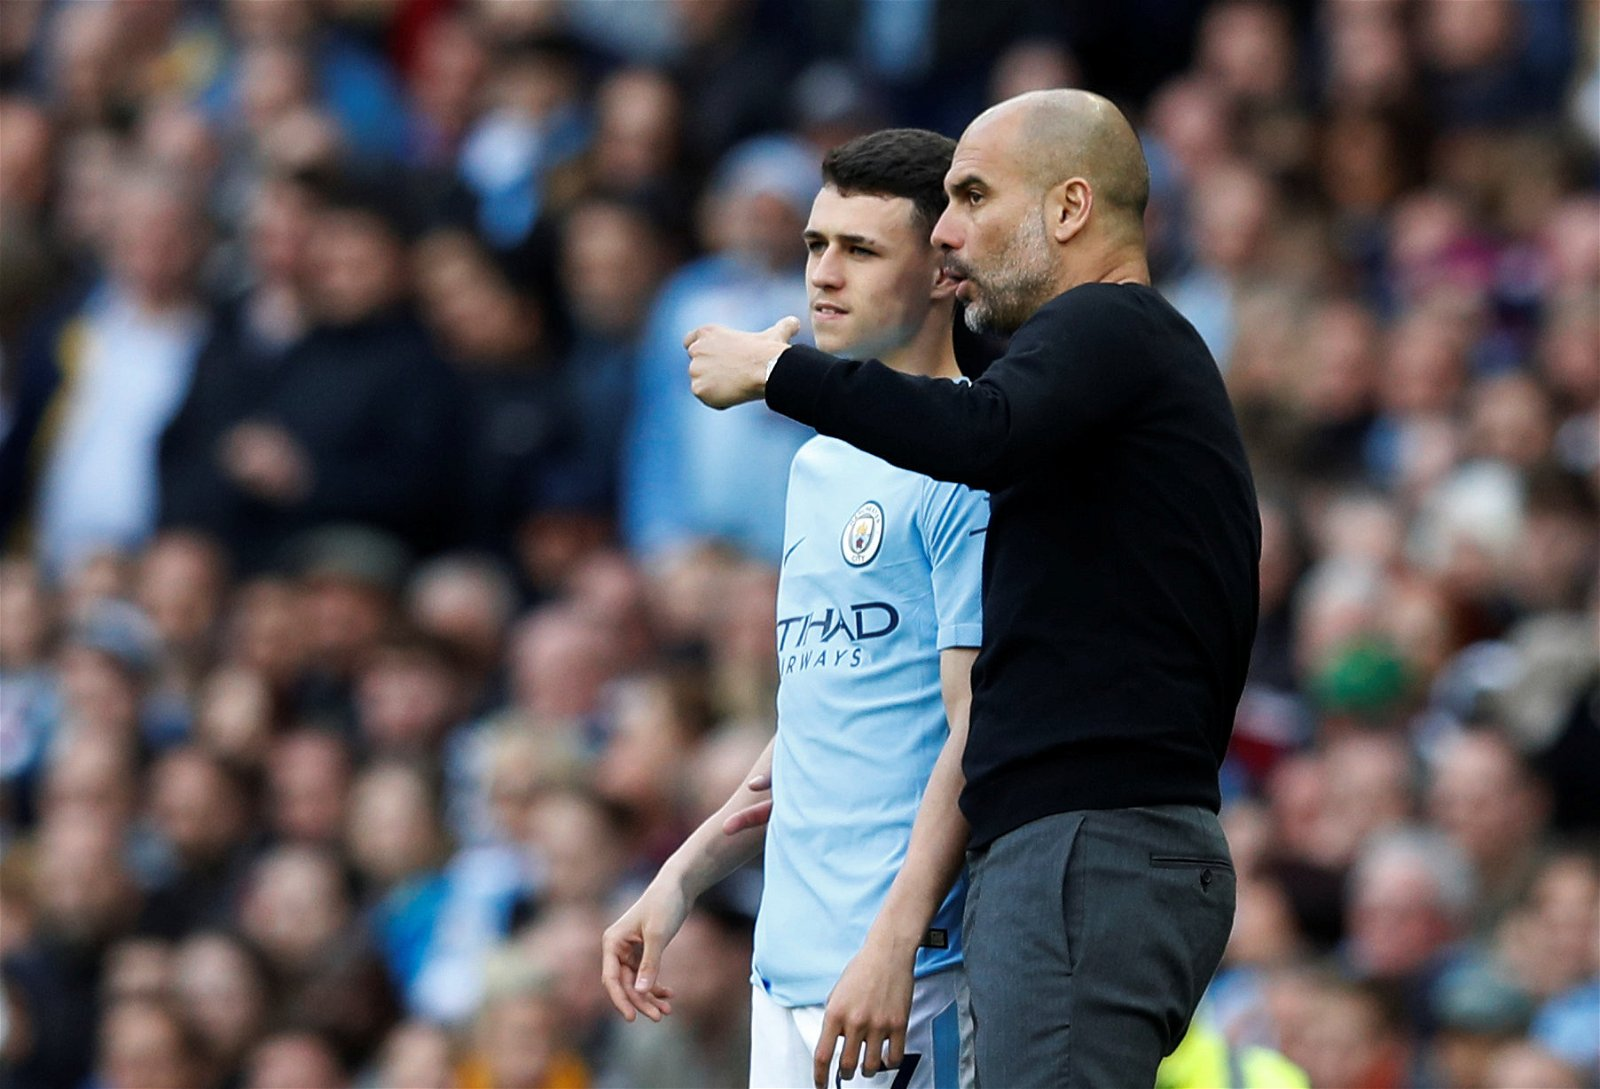 Manchester City boss Pep Guardiola gives Phil Foden instructions on the touchline